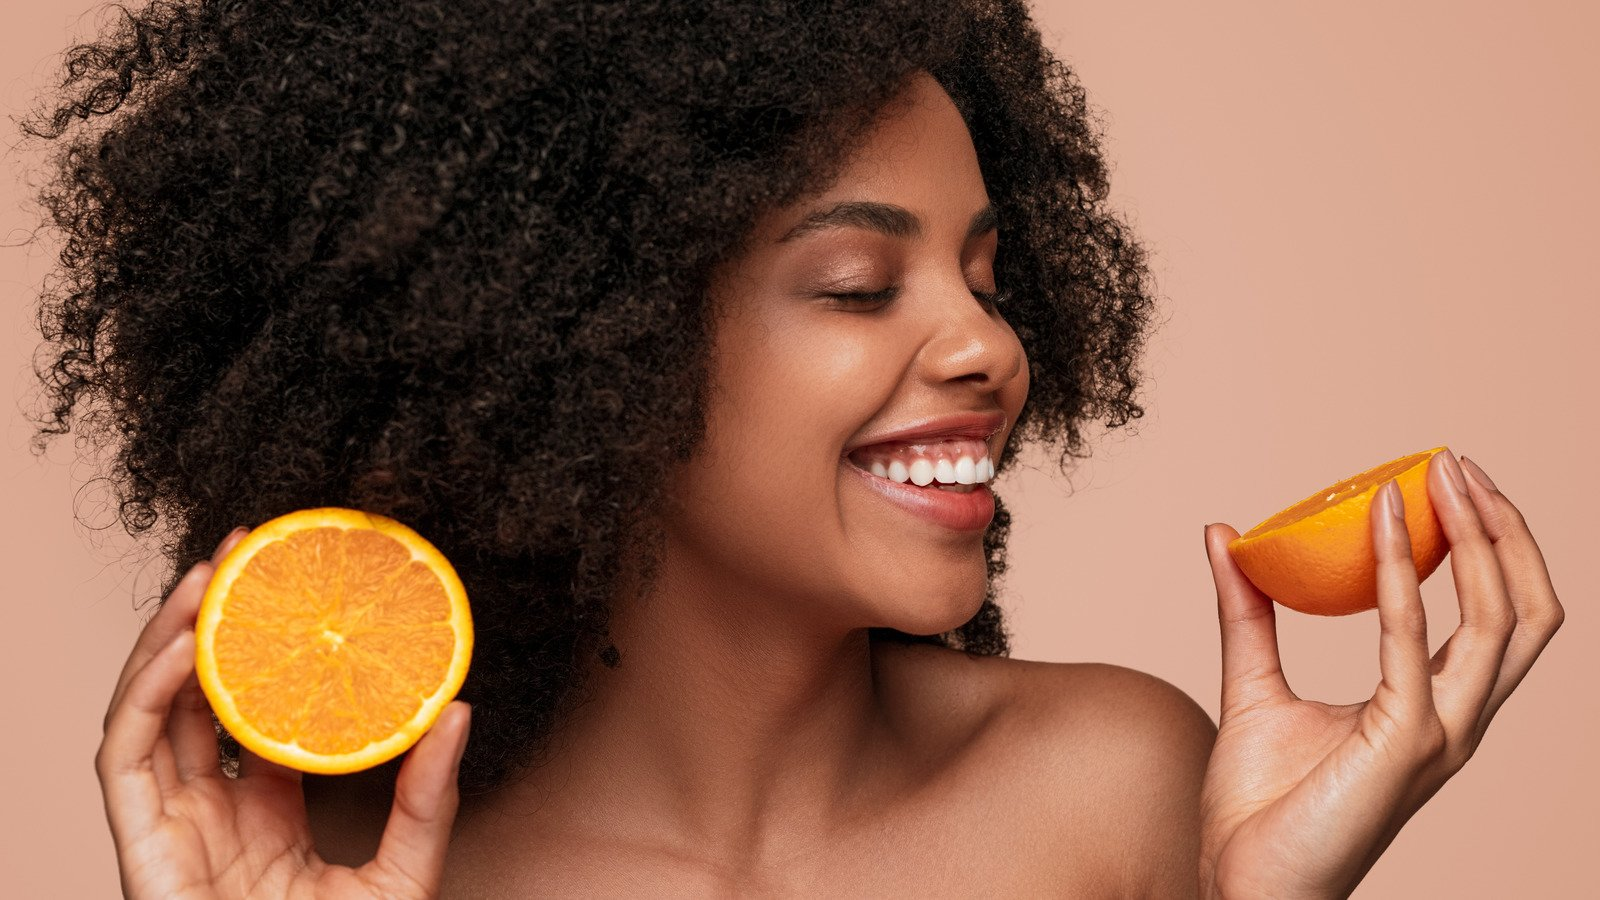 You're Not Getting Enough Vitamin C If This Happens To Your Body